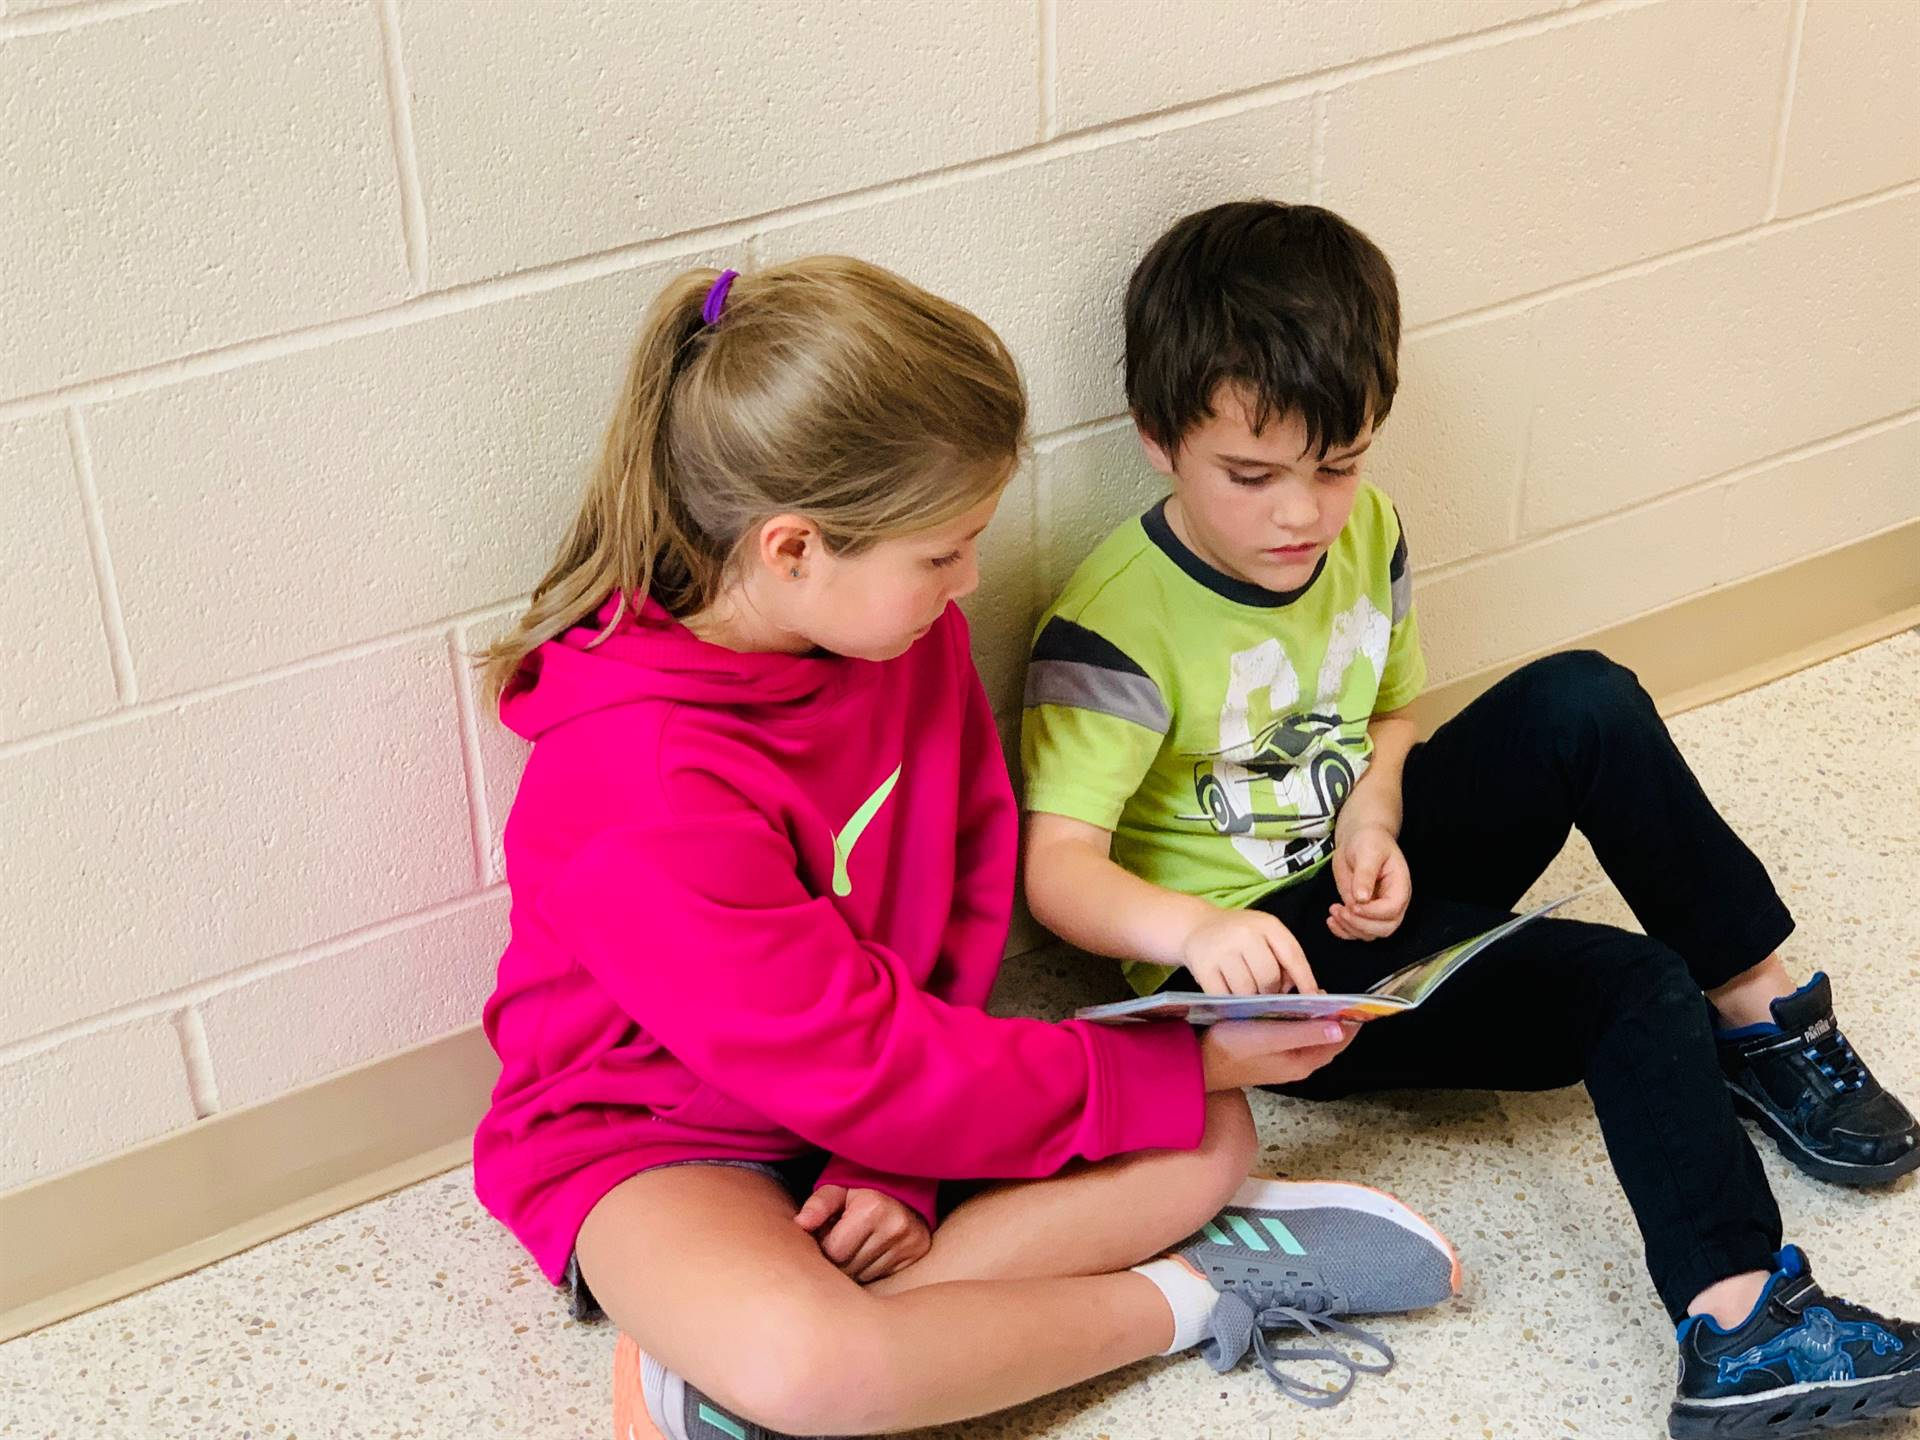 A fourth grader assists a kindergarten student with letter tracing